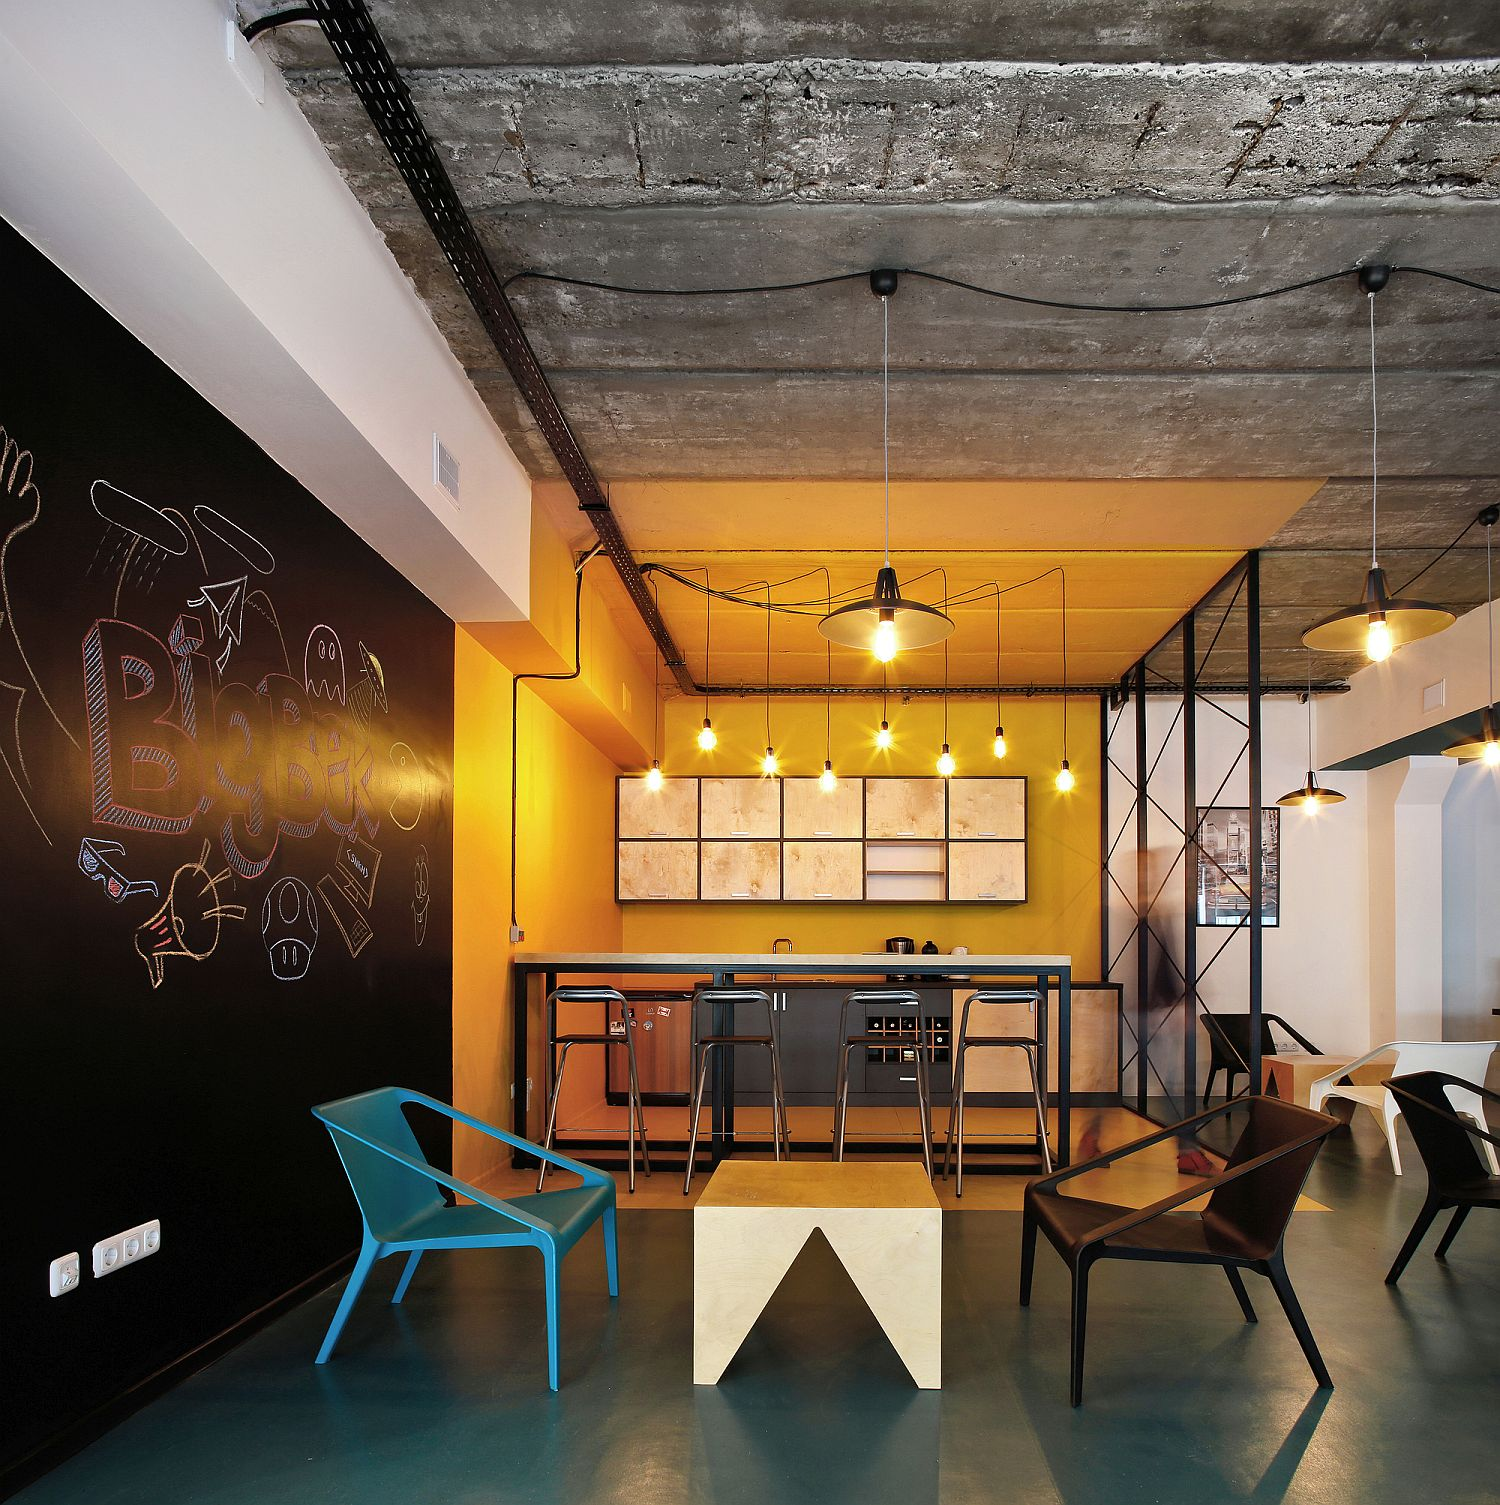 Industrial Office Design a world of color and creative design: modern industrial office in